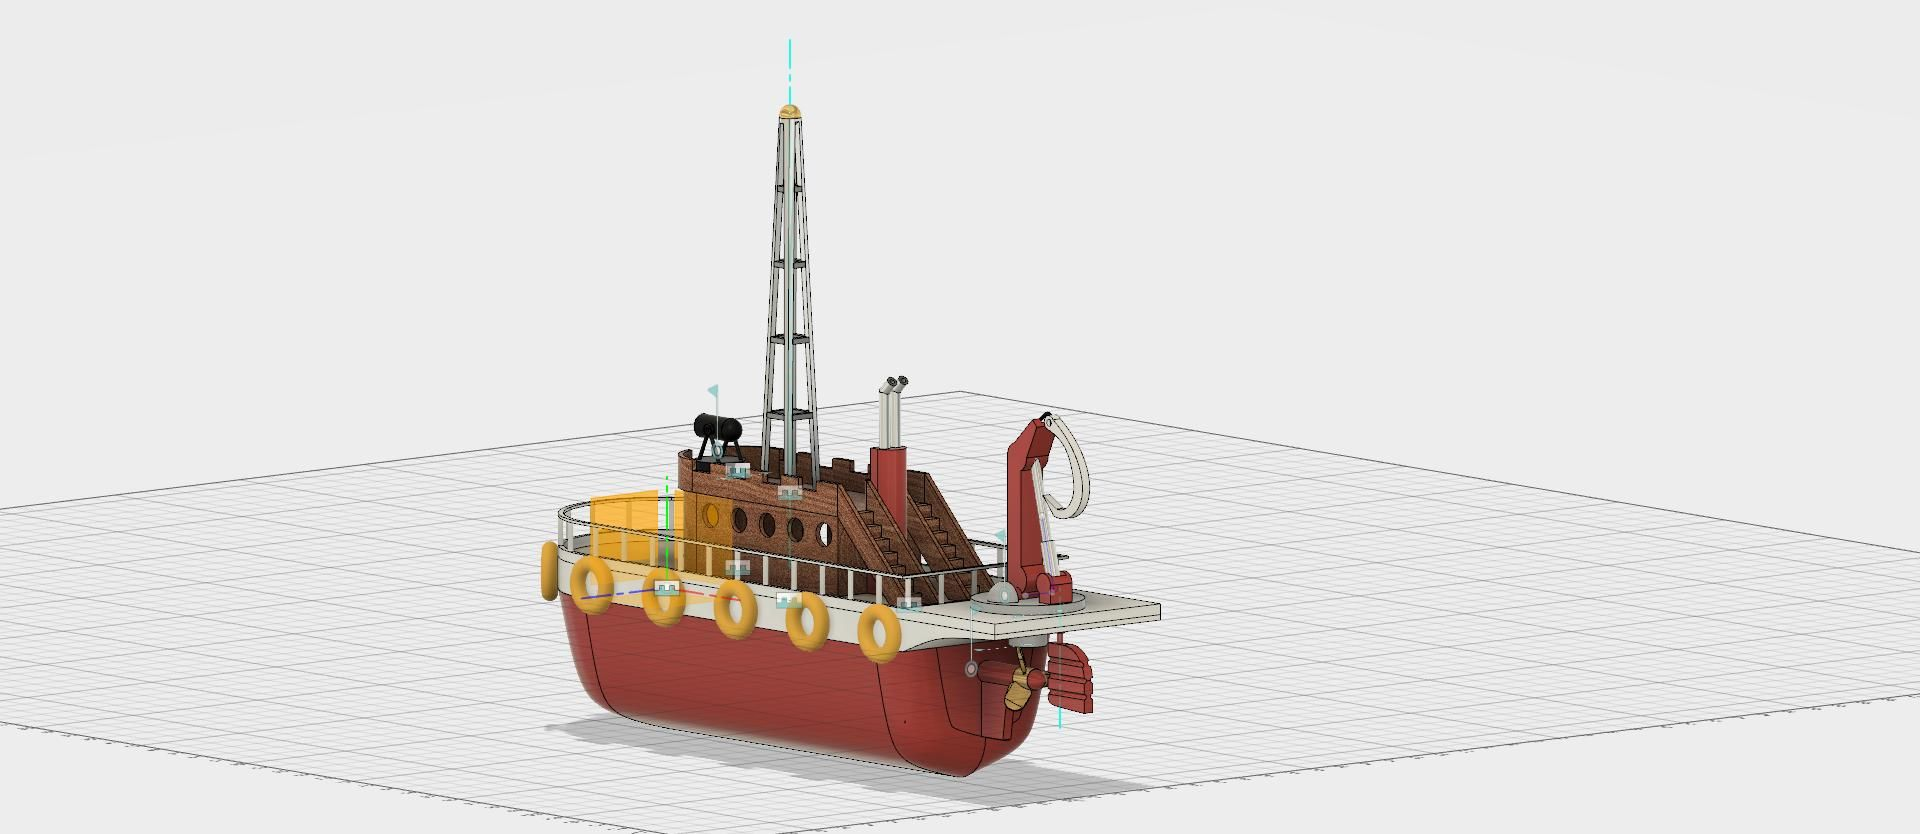 Tug-boat-ext-3500-3500